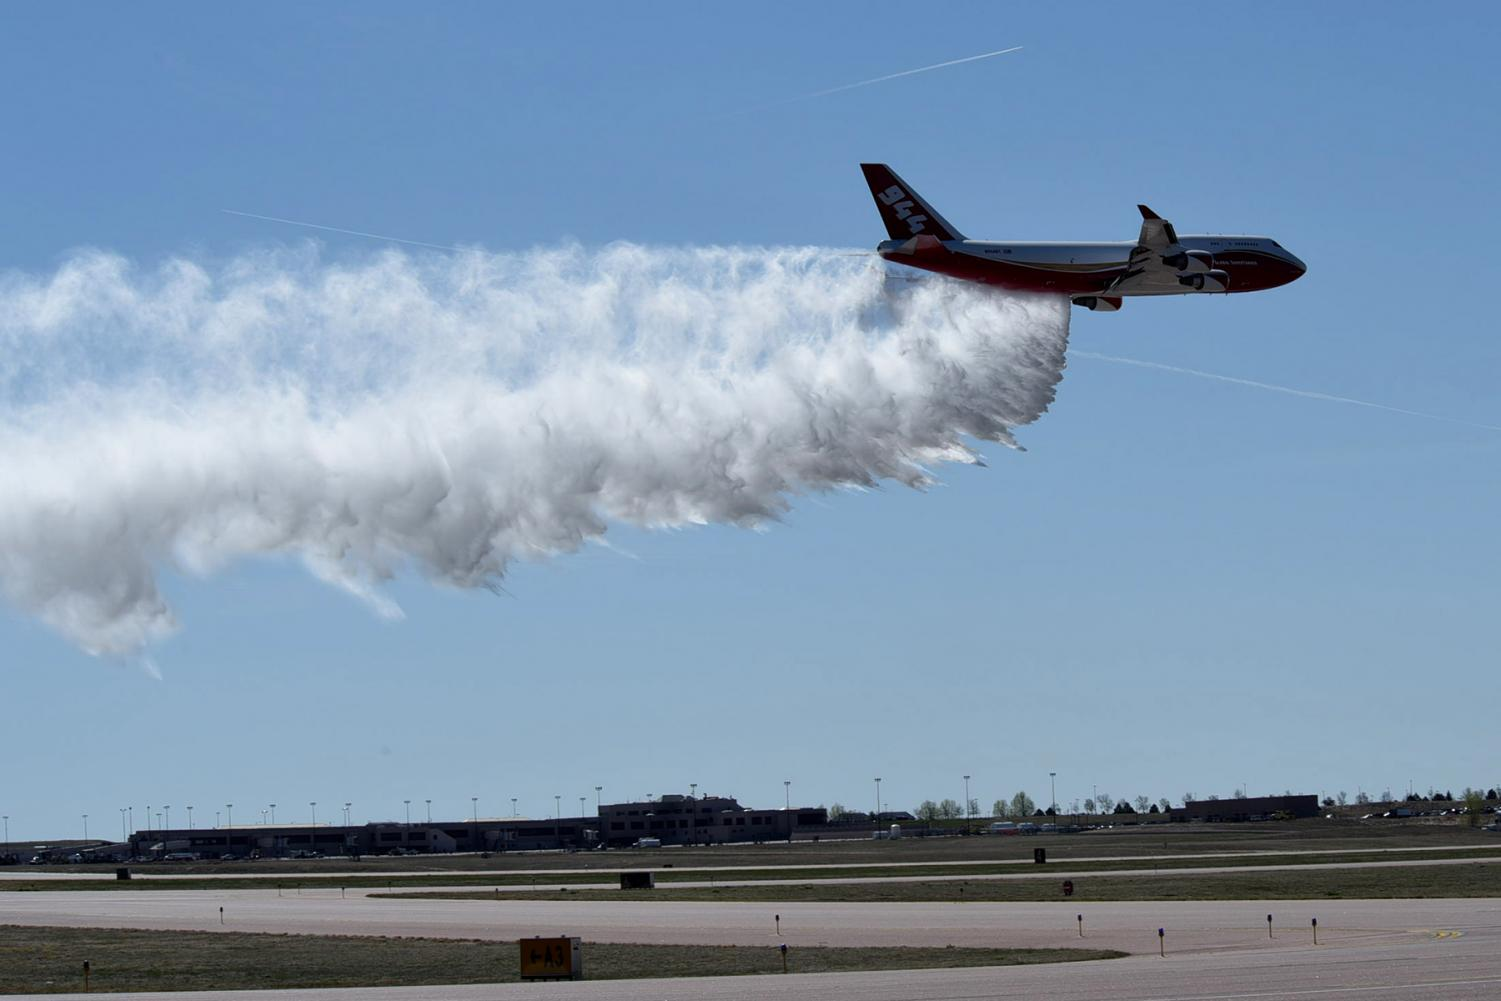 The Firefighting-Supertanker Airplane that can drop up to 19,000 gallons of fire retardant in one trip.